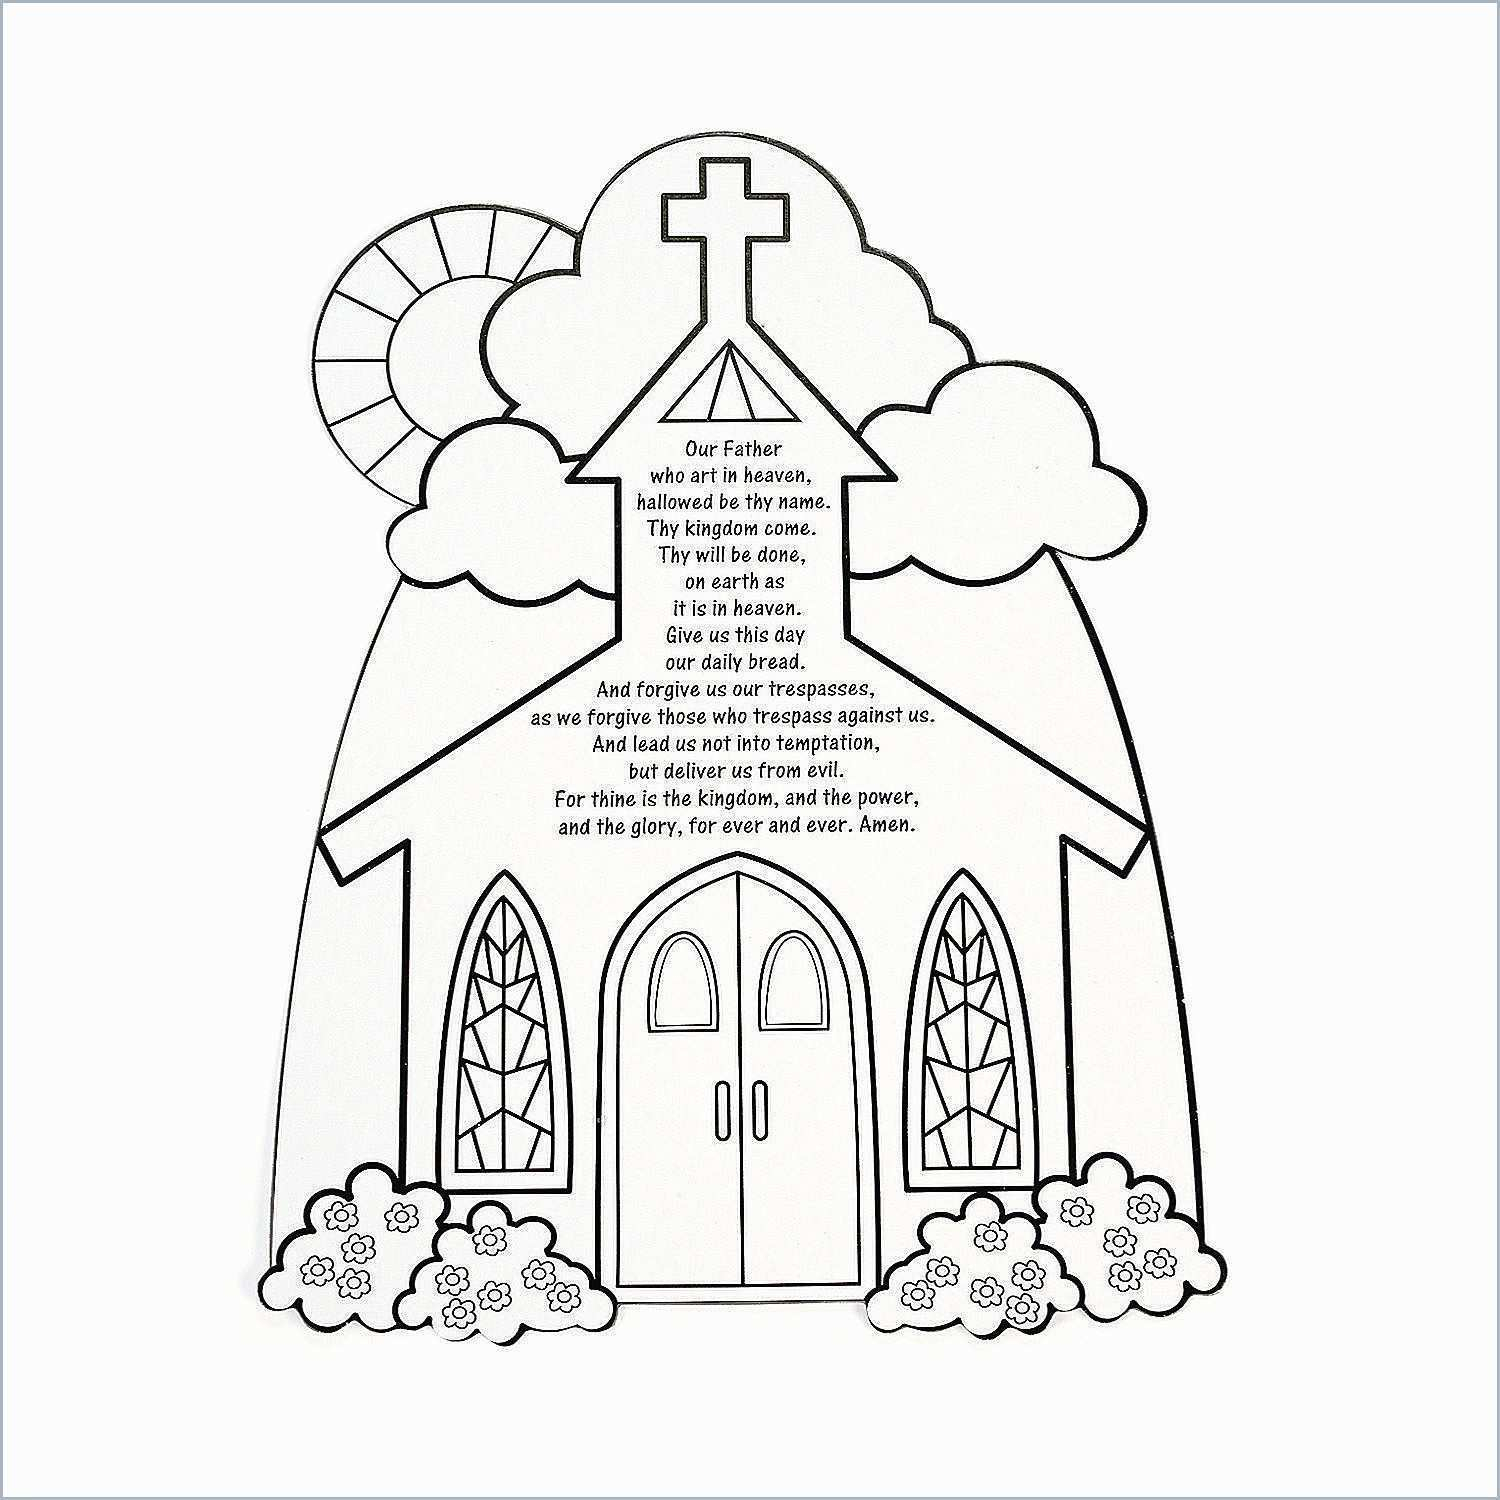 Oriental Trading Coloring Pages Oriental Trading Coloring Pages Best Calvary Kids Pages